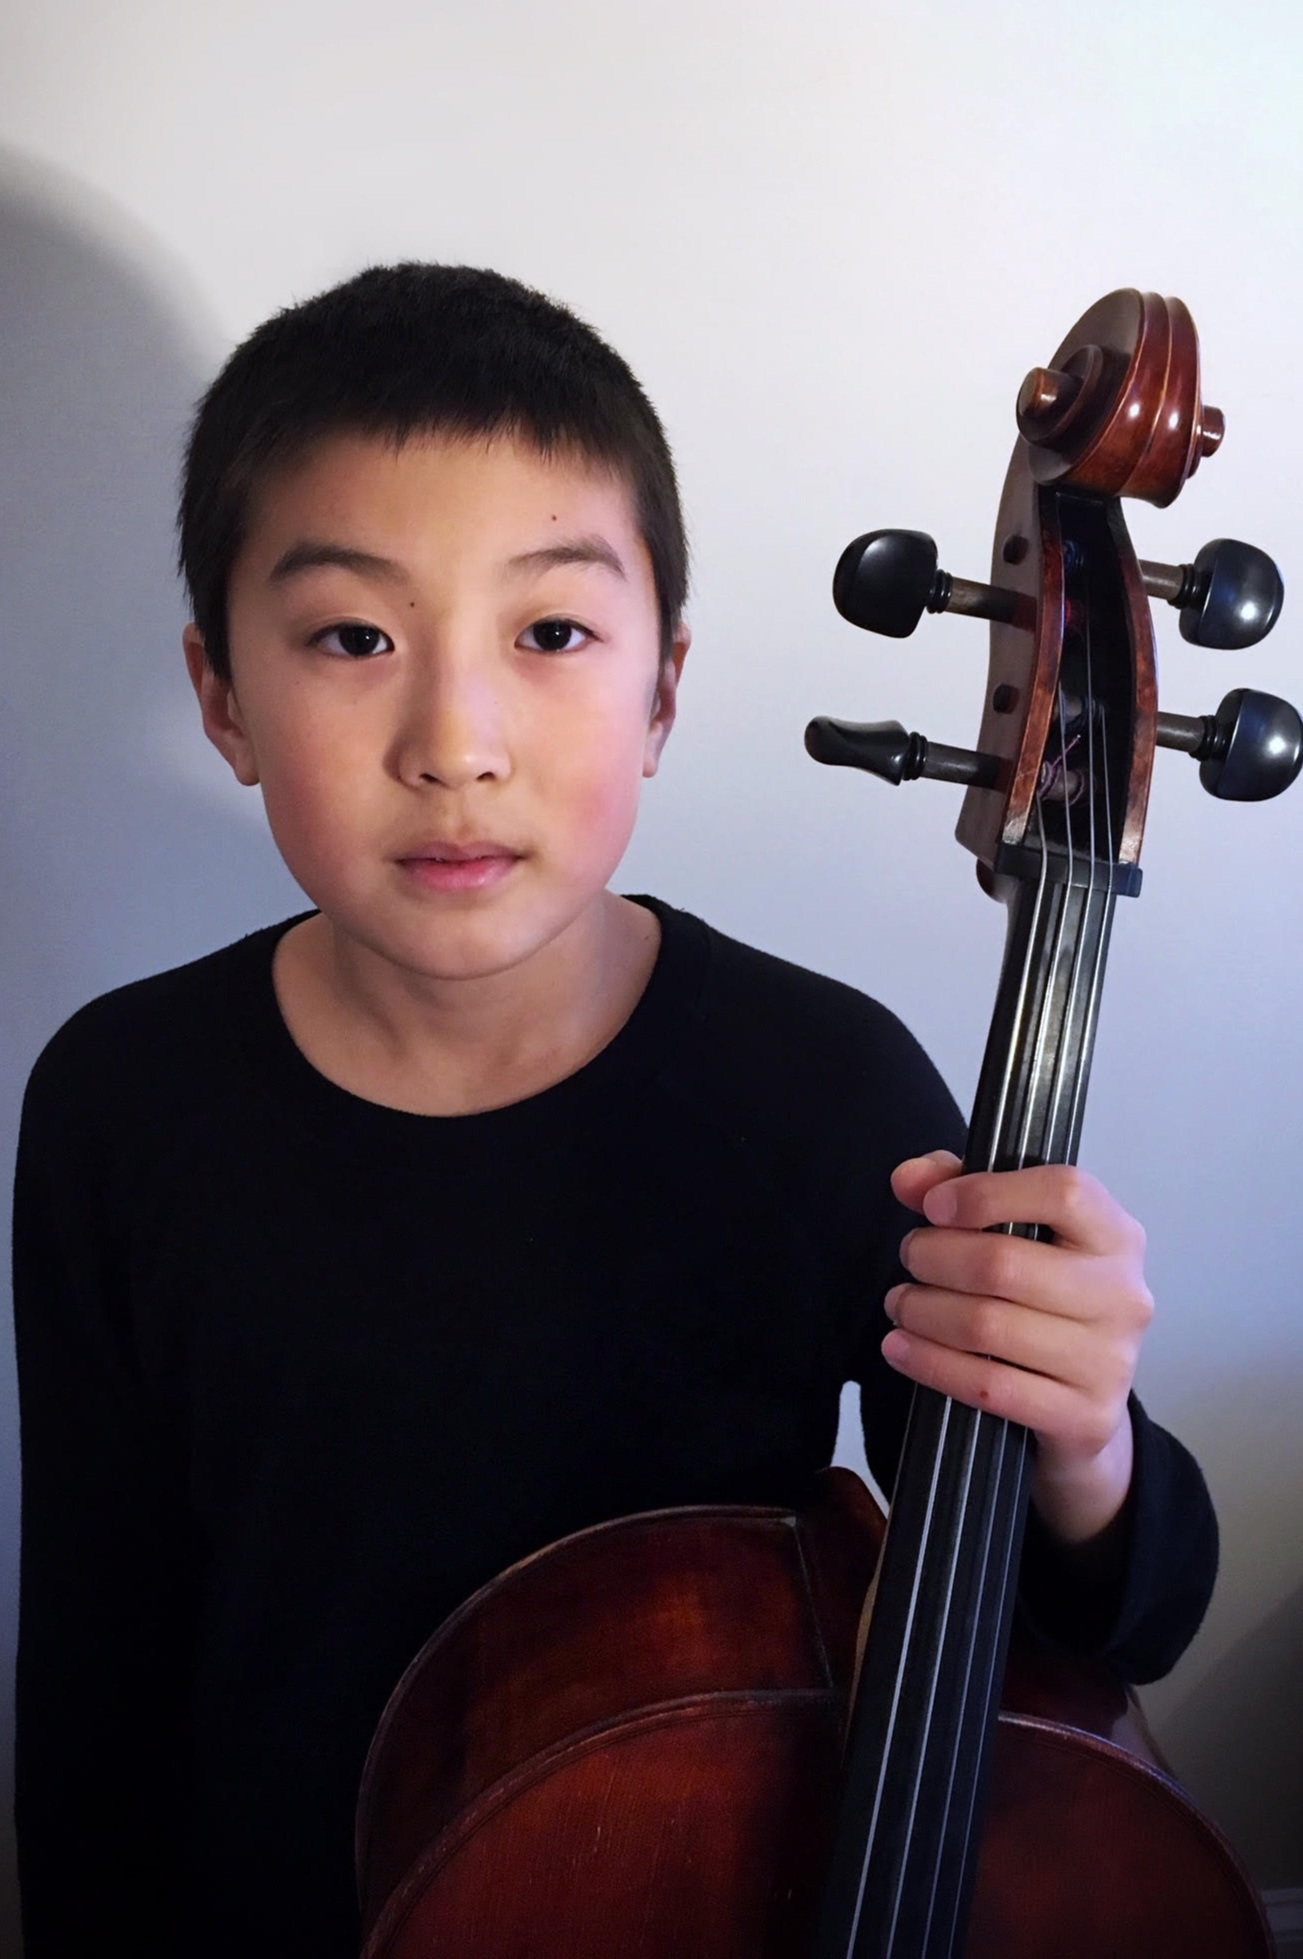 "3rd Prize   Born in New York City, 12-year-old  Oan Woo Park  began cello at age 3. He studies with Yari Bond, whom he first met while attending the Special Music School in Manhattan. Oan is a member of Trio Giocoso, coached by Laura Blustein, which appeared on NPR's ""From the Top"" (2017). He has received honors from the VIVO International Music Competition, the New York Music Competition, the Brockton Symphony Youth Concerto Competition, and will soon make his orchestral debut with the Wellesley Symphony Orchestra. In his free time, Oan likes to play video games and relax with his hamster, Peanut."